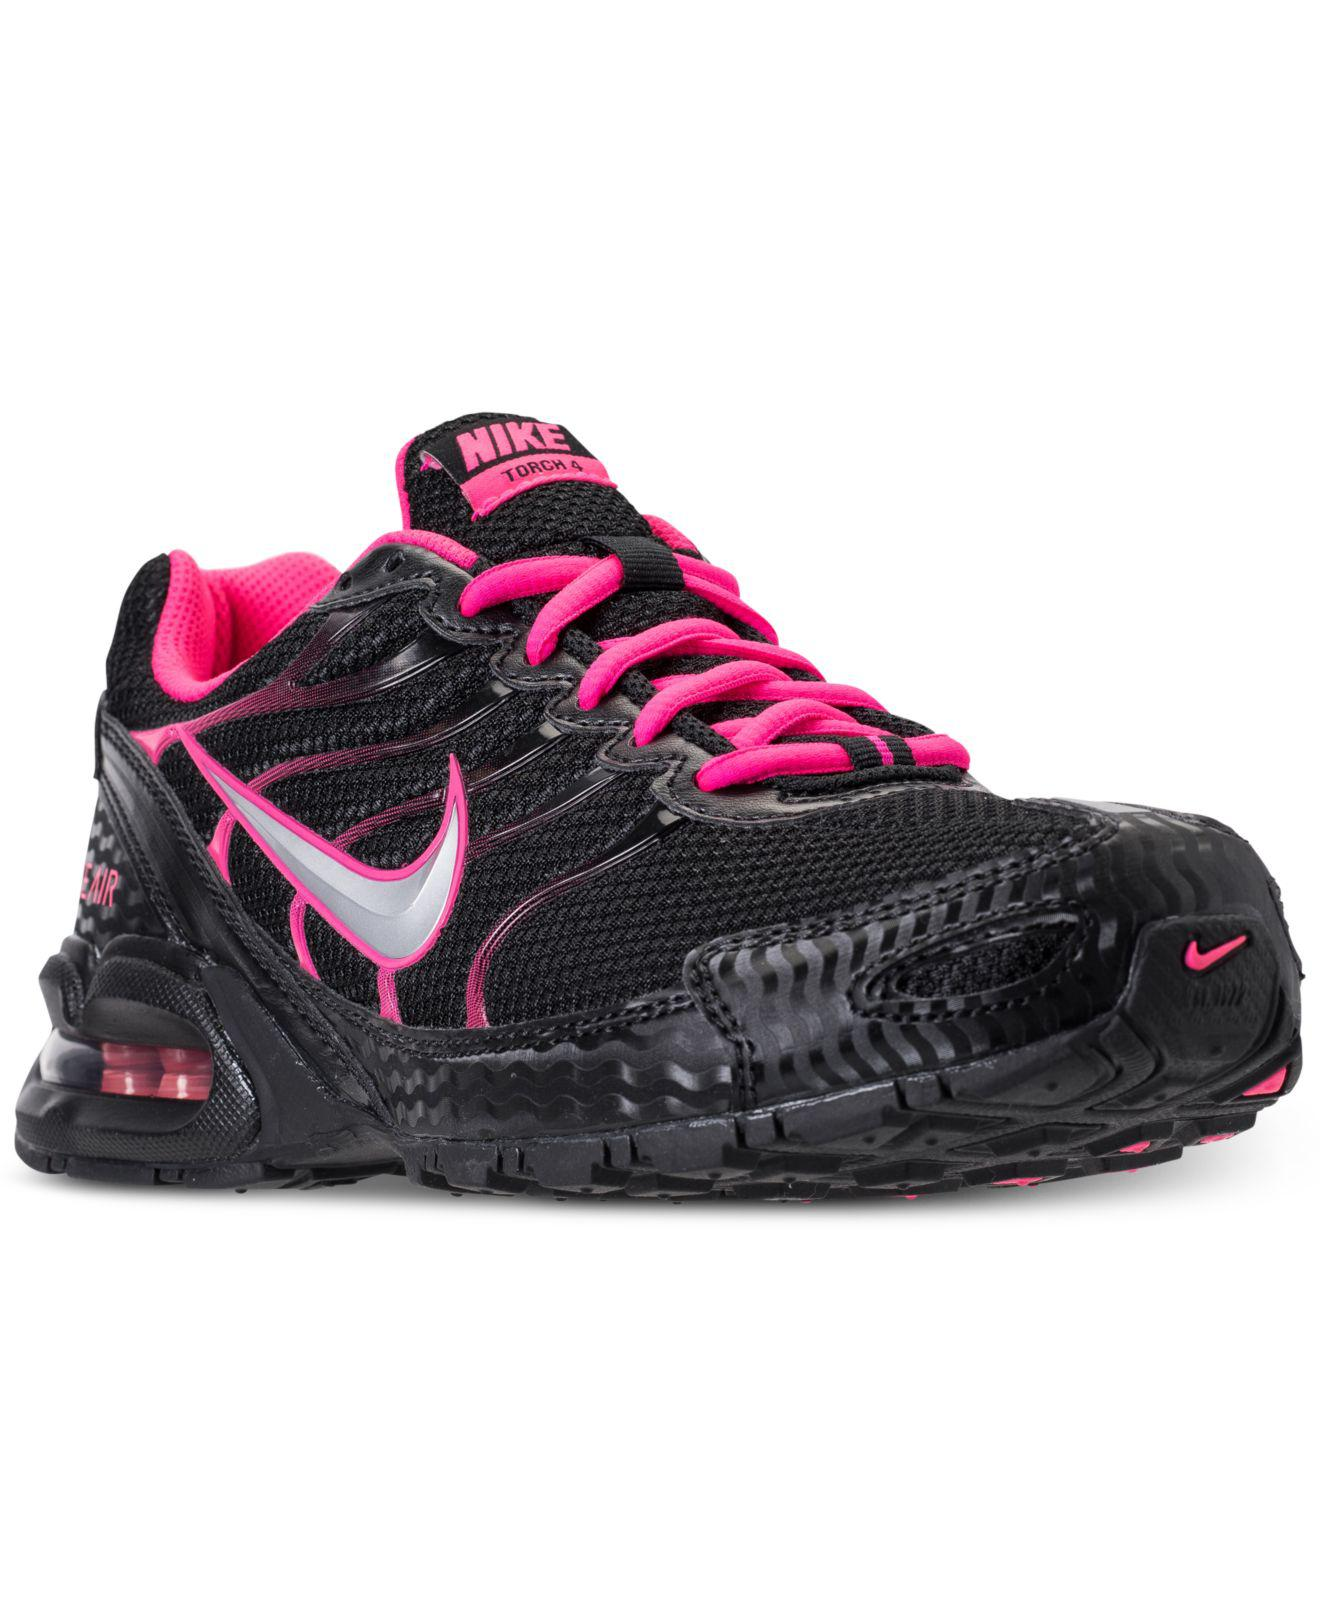 b3c1aa02597 Lyst - Nike Women s Air Max Torch 4 Running Sneakers From Finish ...